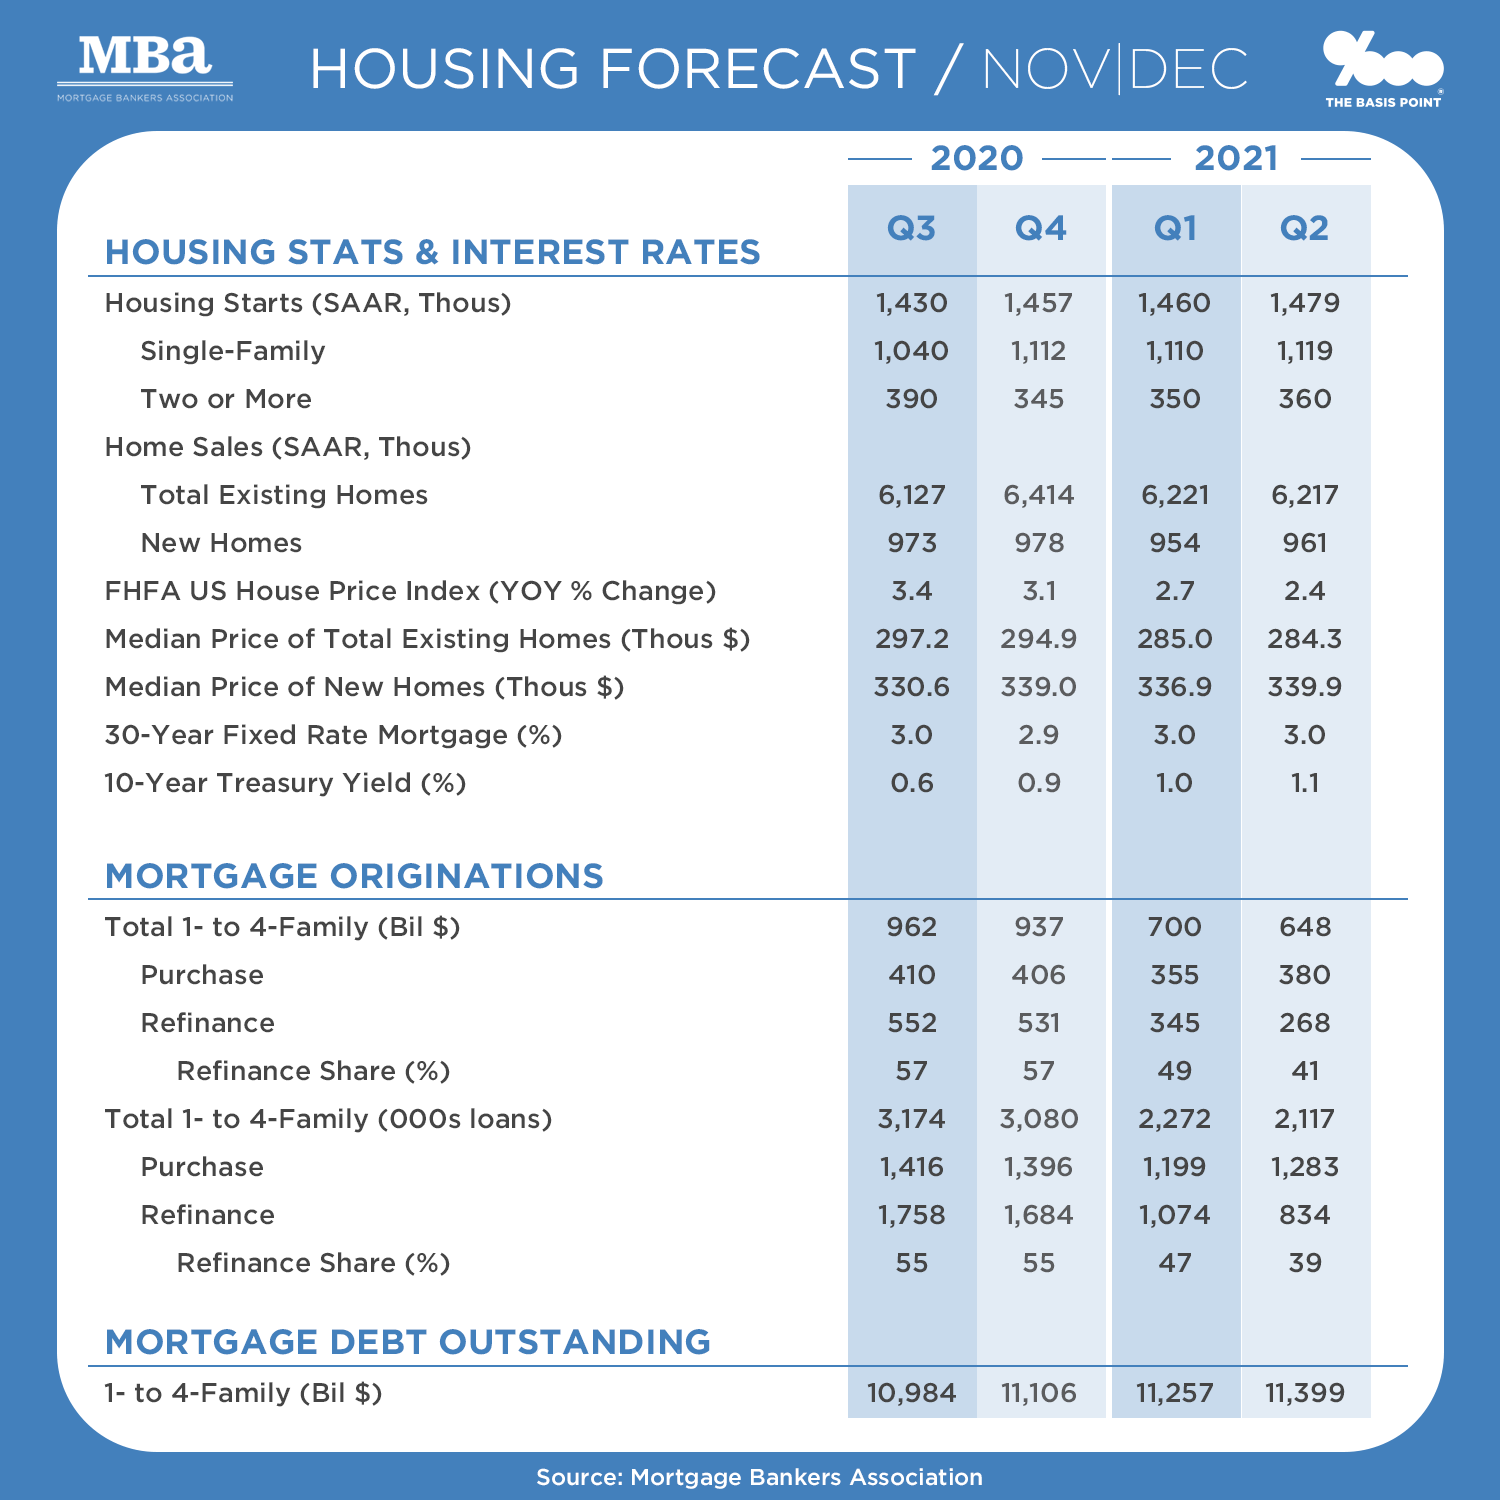 Home Prices, Mortgage Refi Rates Today, Size of Mortgage Market - MBA Outlook 3Q20 to 2Q21 - The Basis Point